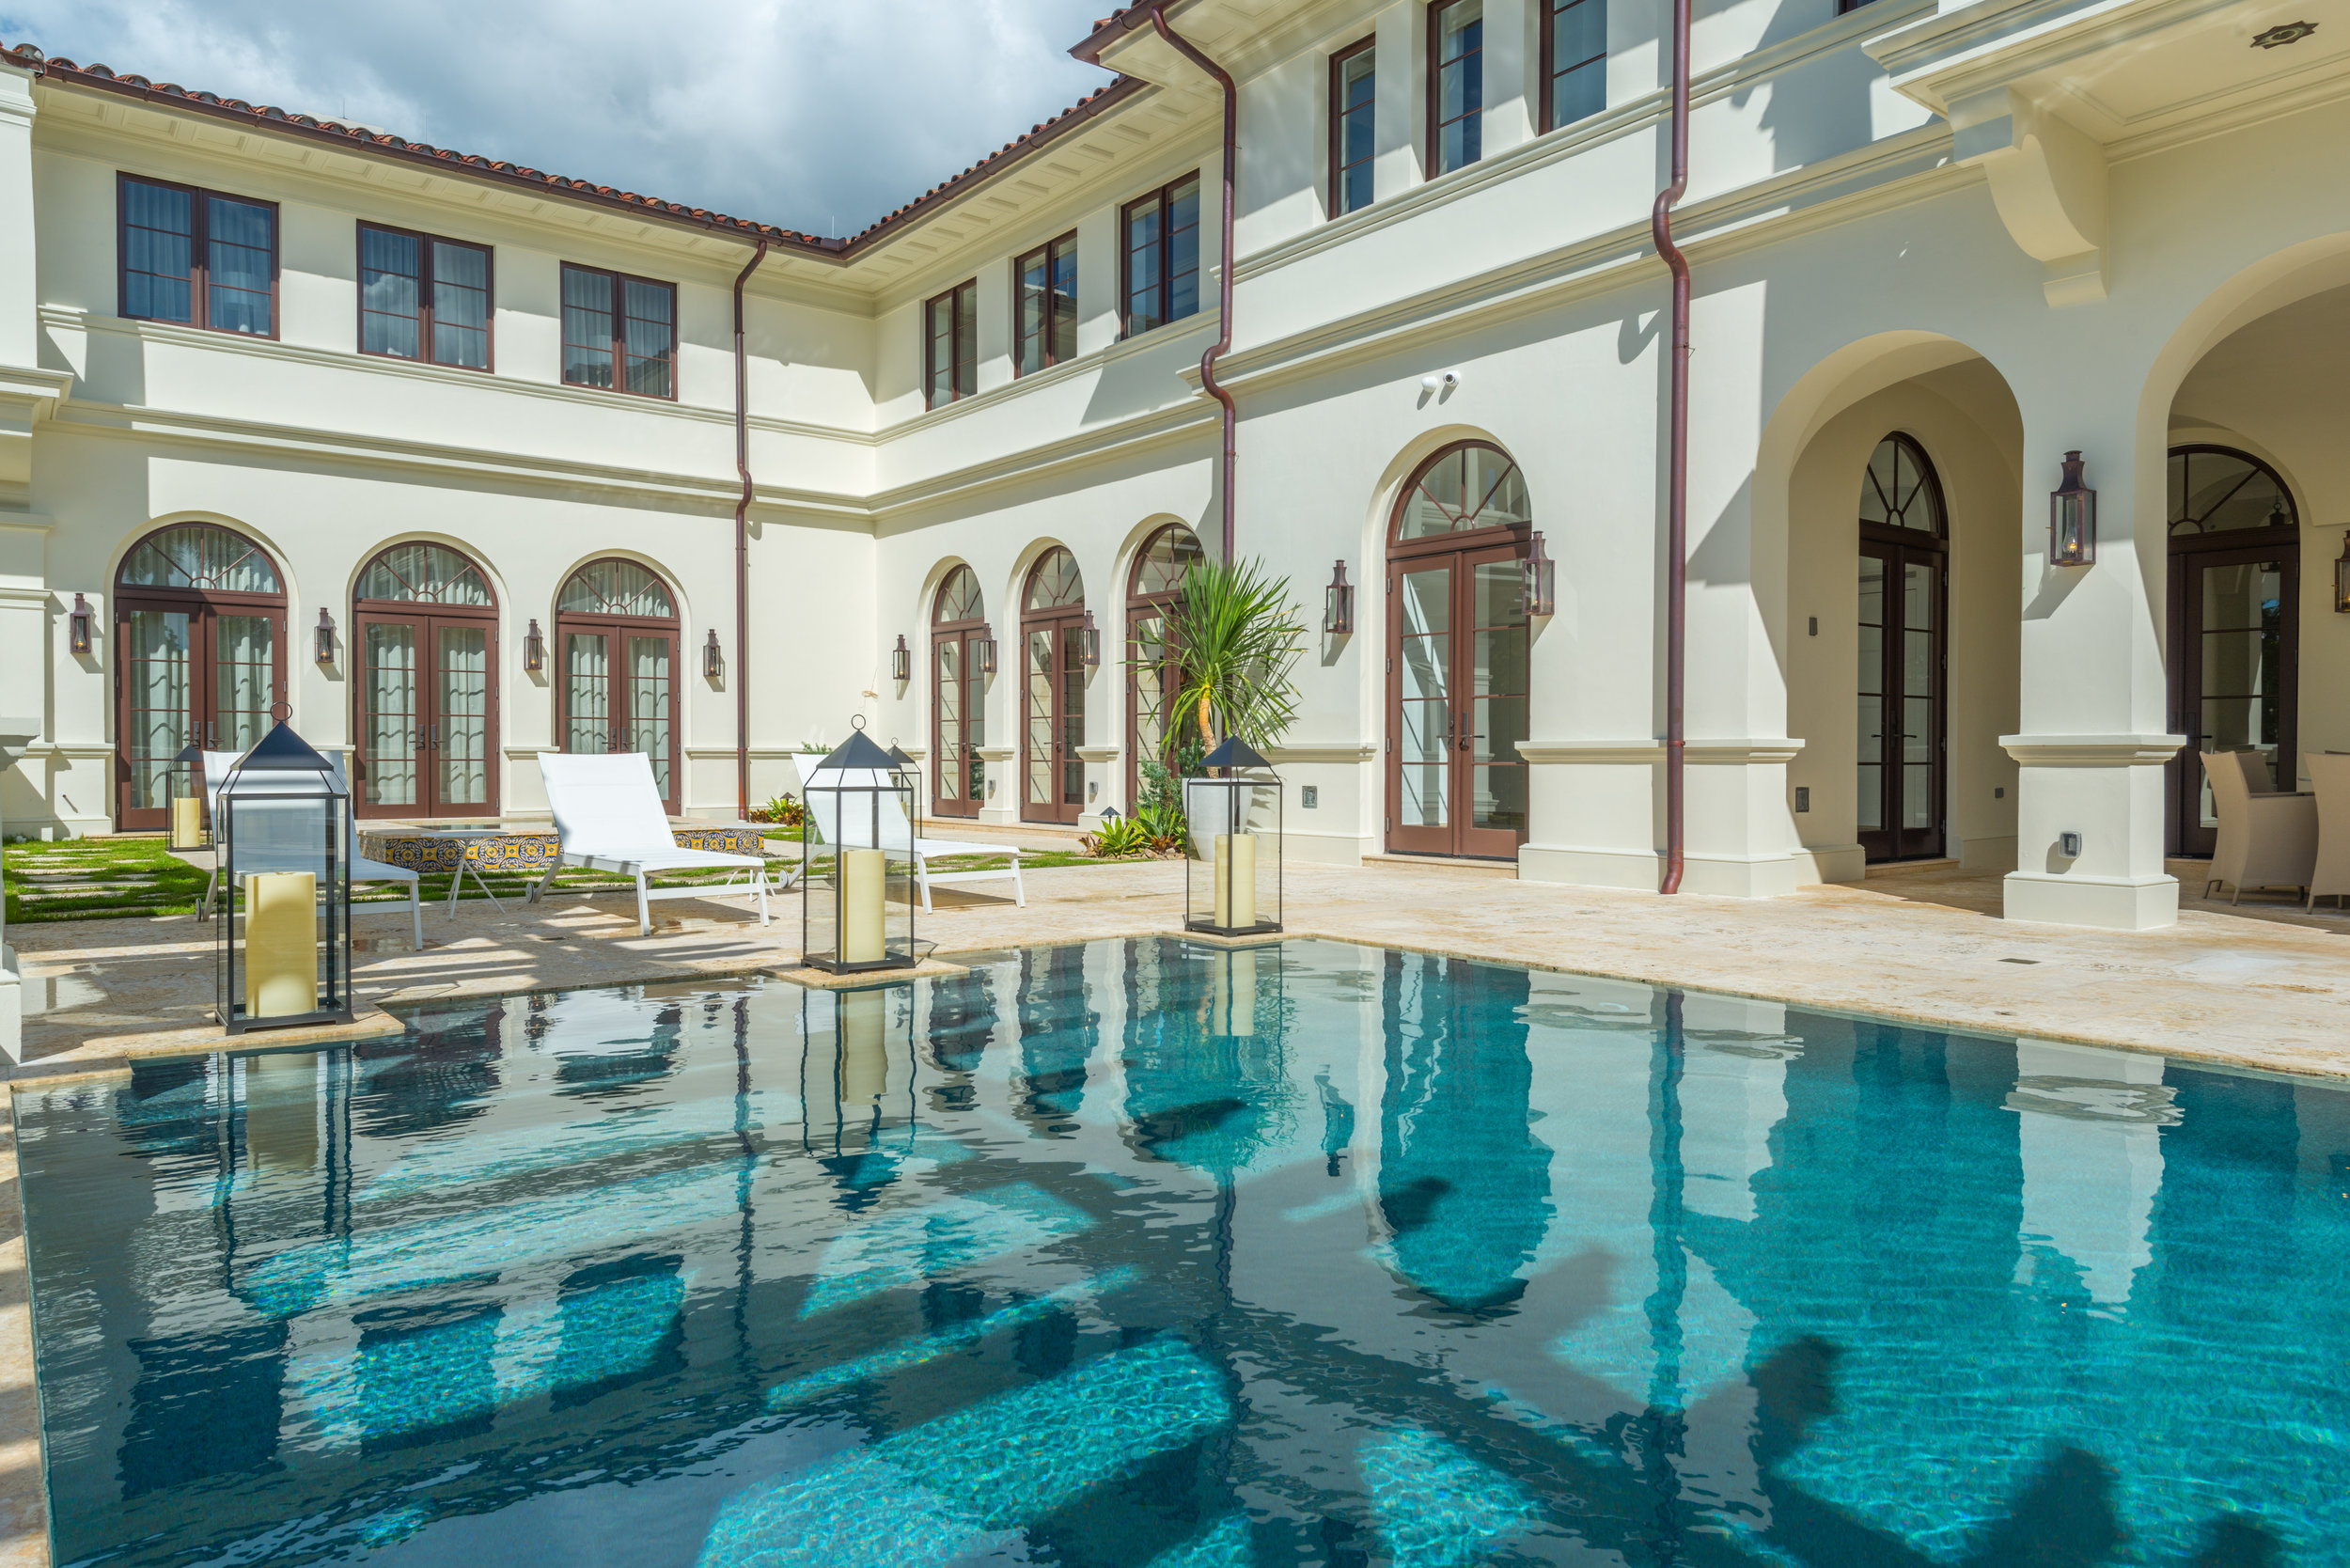 Bacardi Heiress' Uber-Luxe, Super Private Cocoplum Estate Casa Costanera Sells For $19 Million